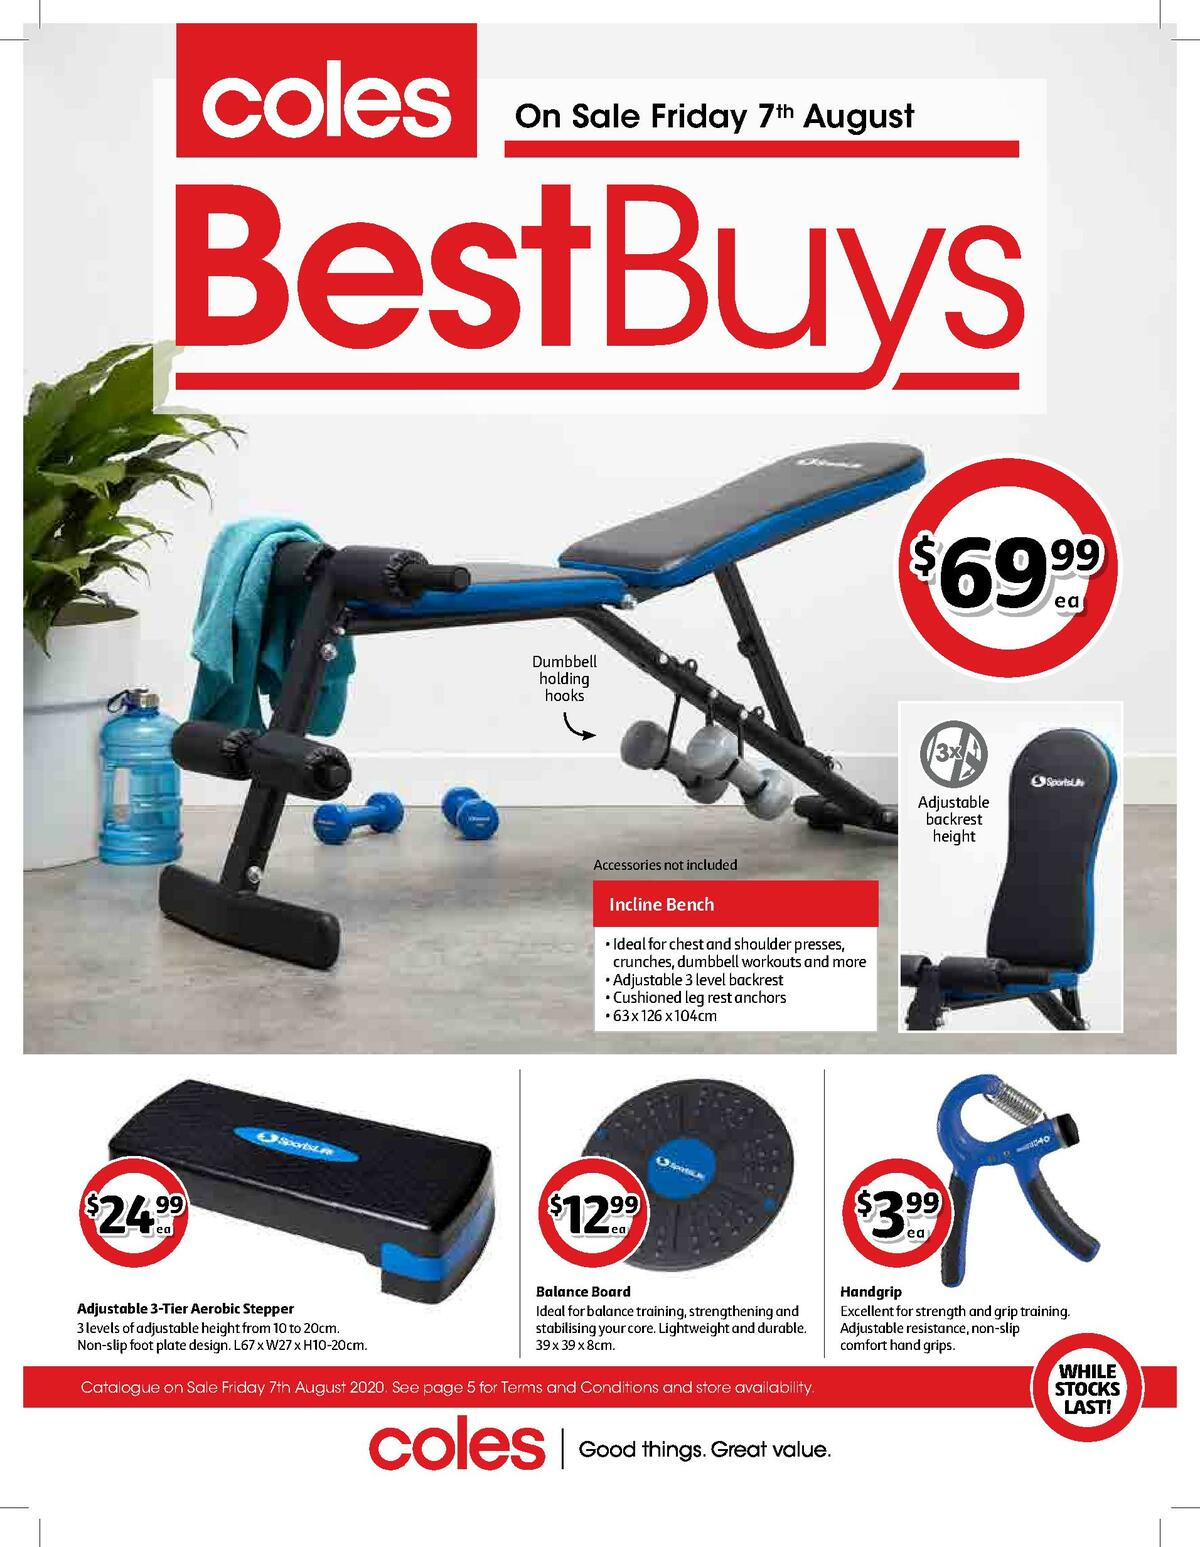 Coles Best Buys Catalogues from August 7